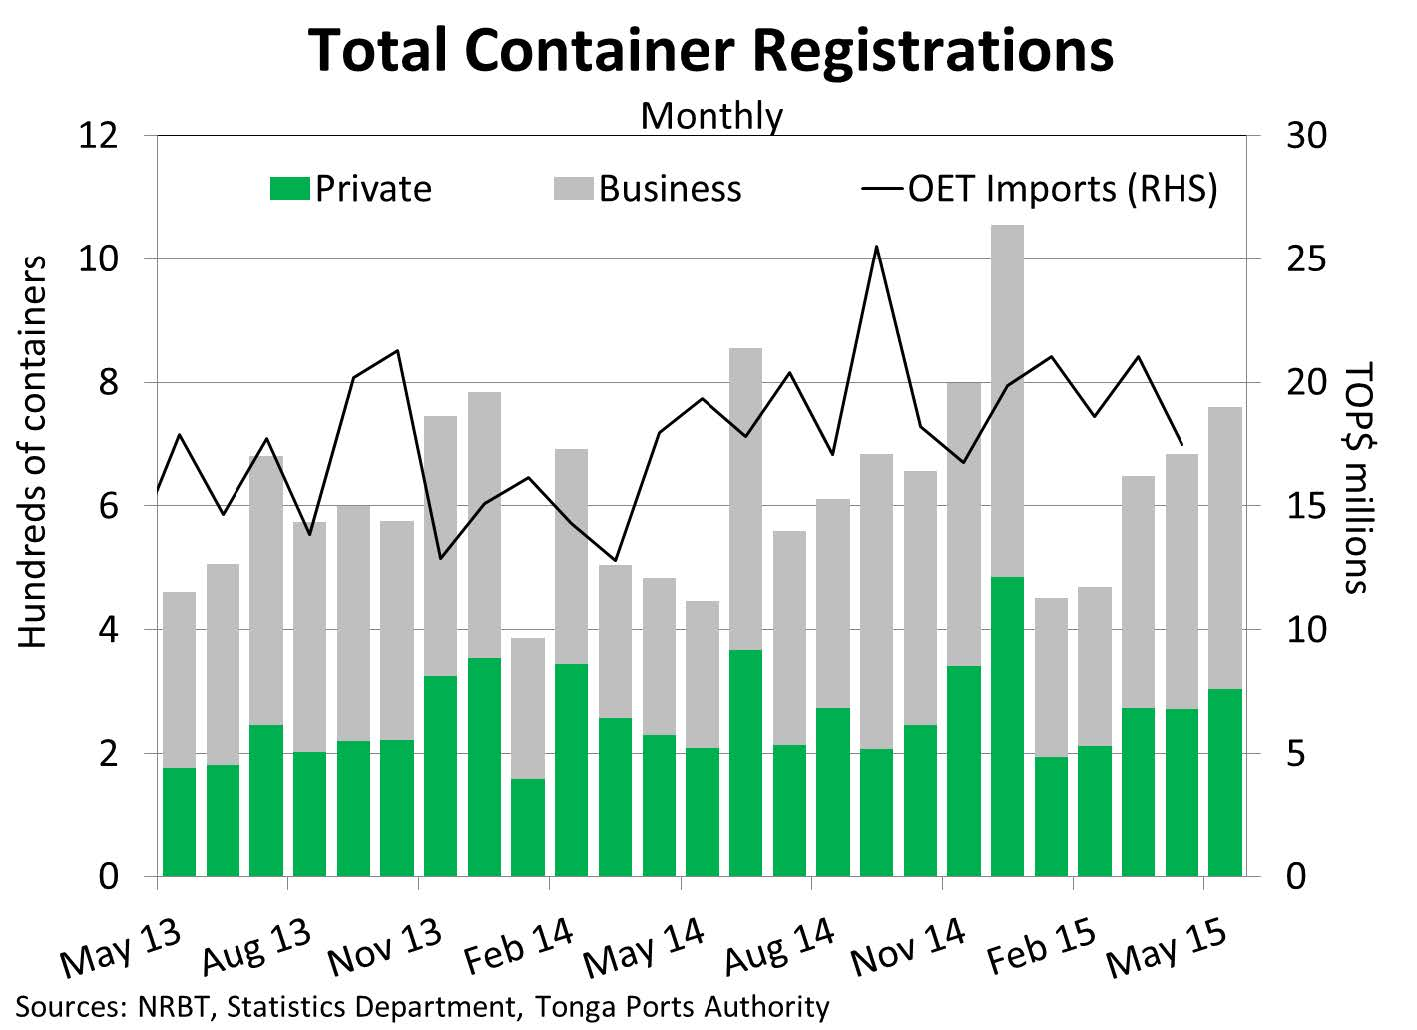 ContainerRegistration May15